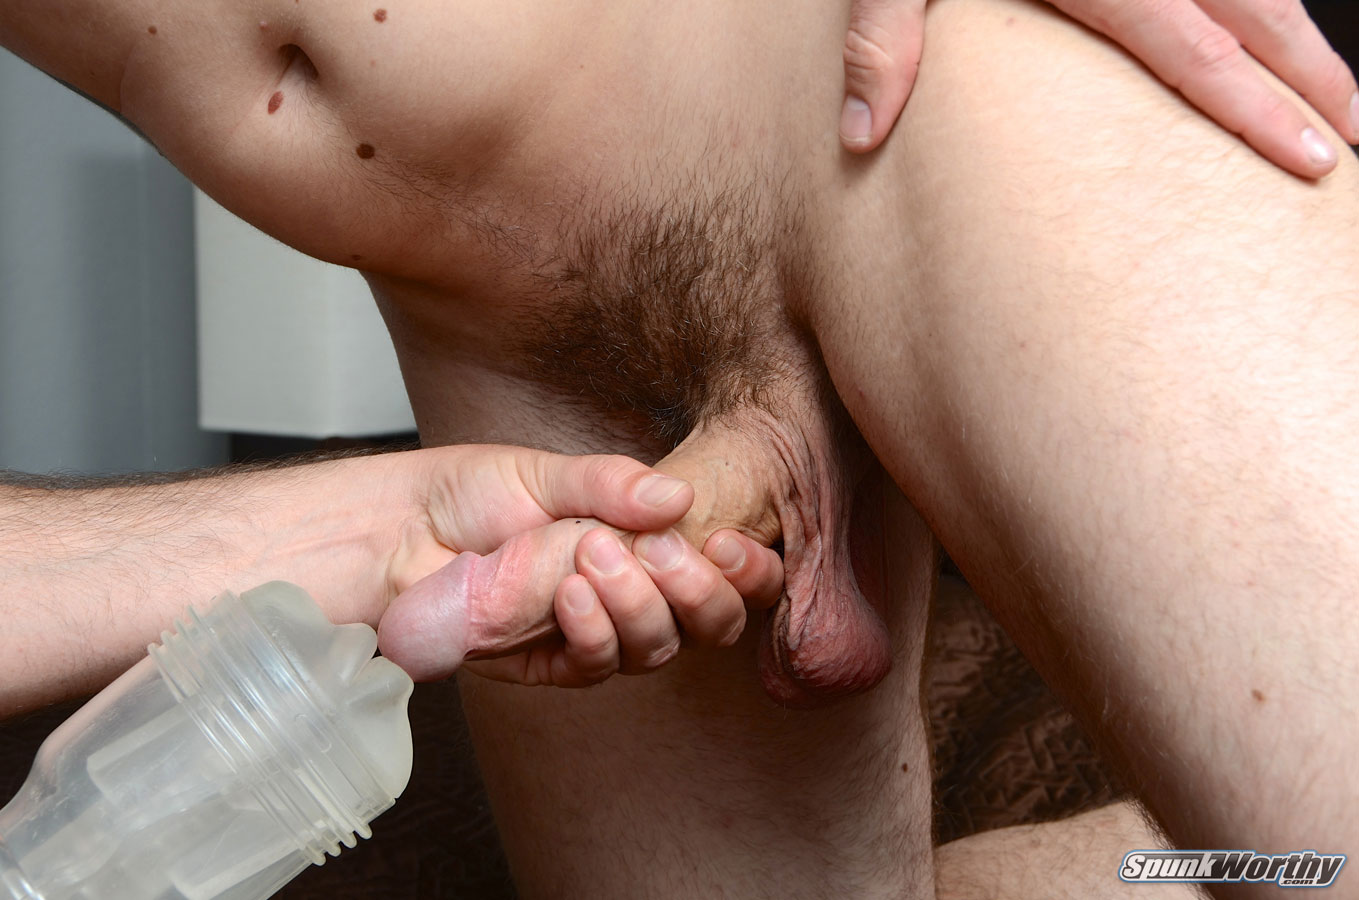 SpunkWorthy Eli Straight Marine Gets A Hand Job Fleshlight from A guy Amateur Gay Porn 14 Straight Marine Gets His First Hand Job From Another Guy